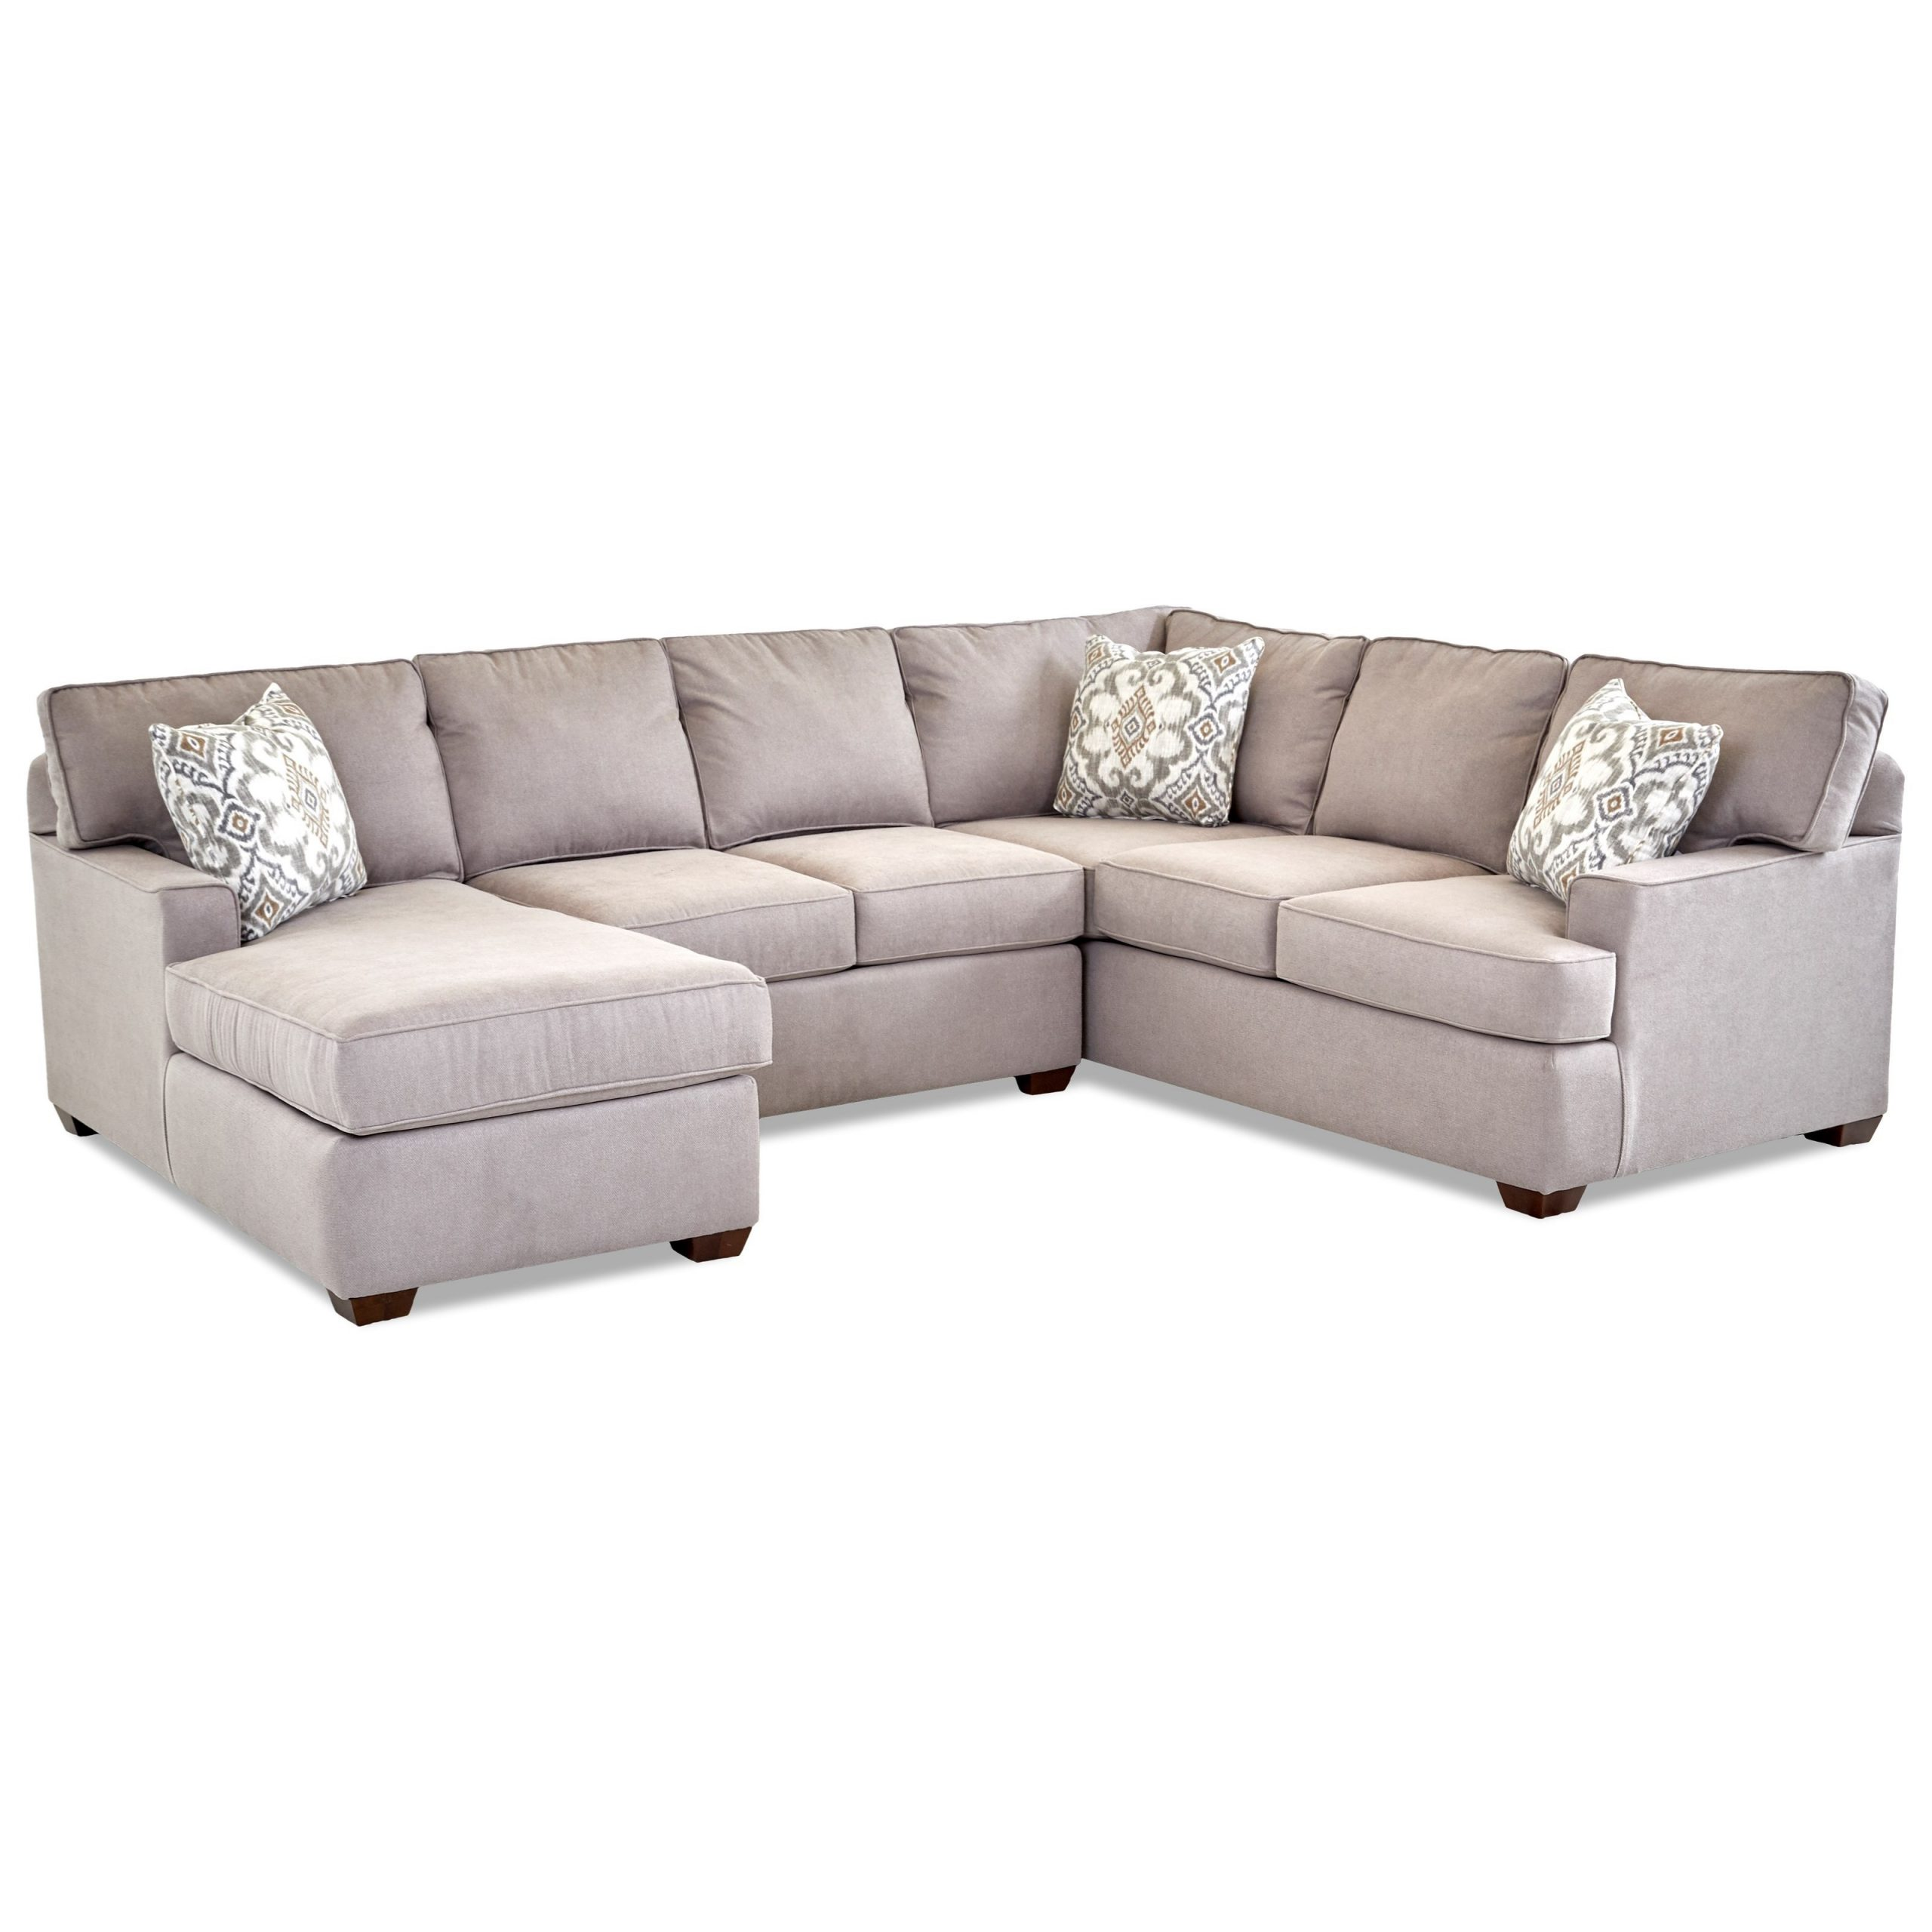 2018 Klaussner Pantego 3 Piece Sectional Sofa With Raf Chaise In 3Pc Miles Leather Sectional Sofas With Chaise (View 1 of 25)